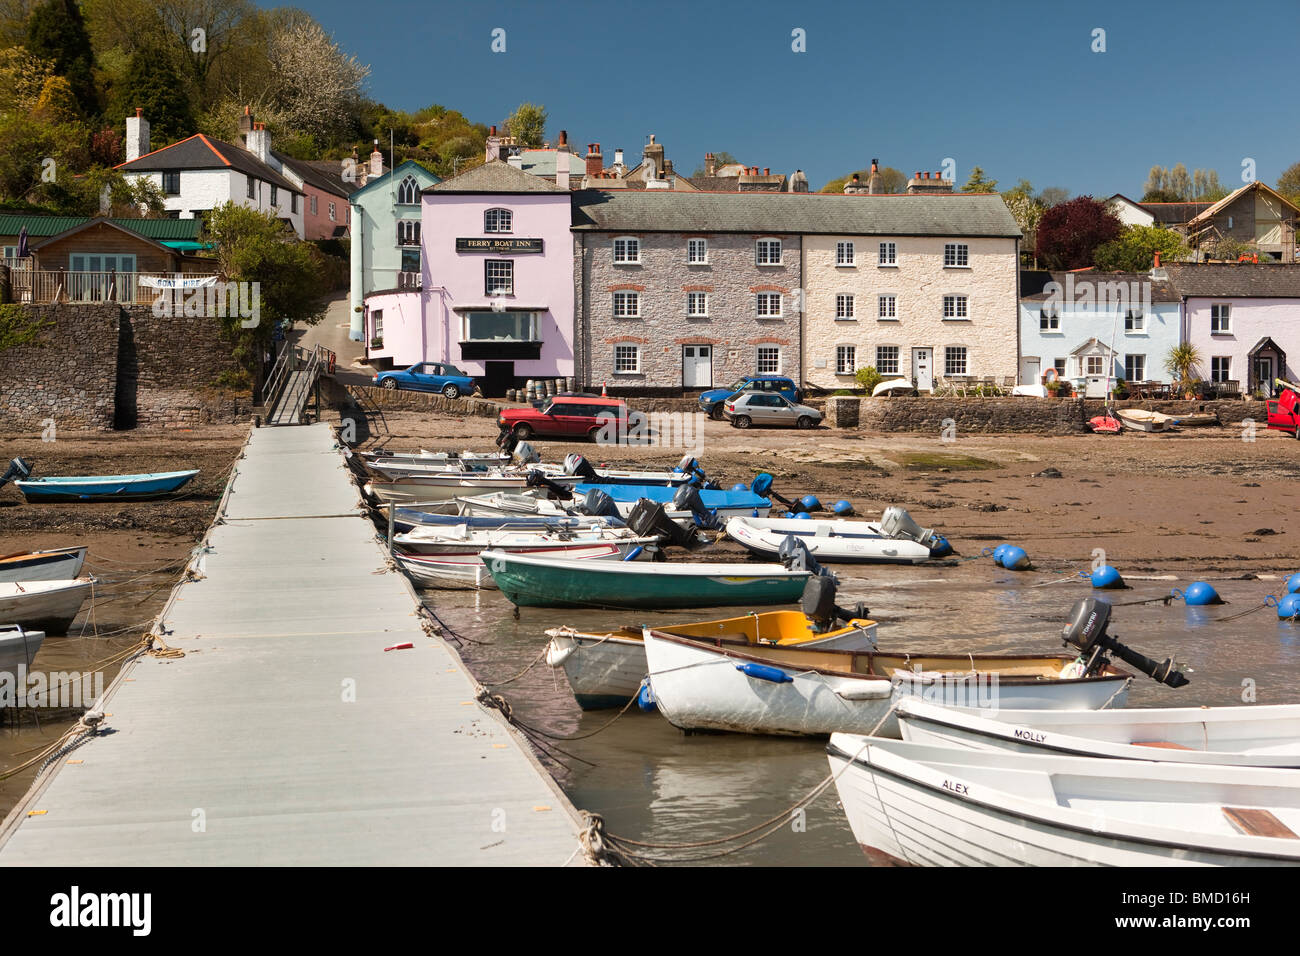 UK, England, Devon, Dittisham, yacht tenders moored in front of colourfully painted riverside houses on the Quay Stock Photo